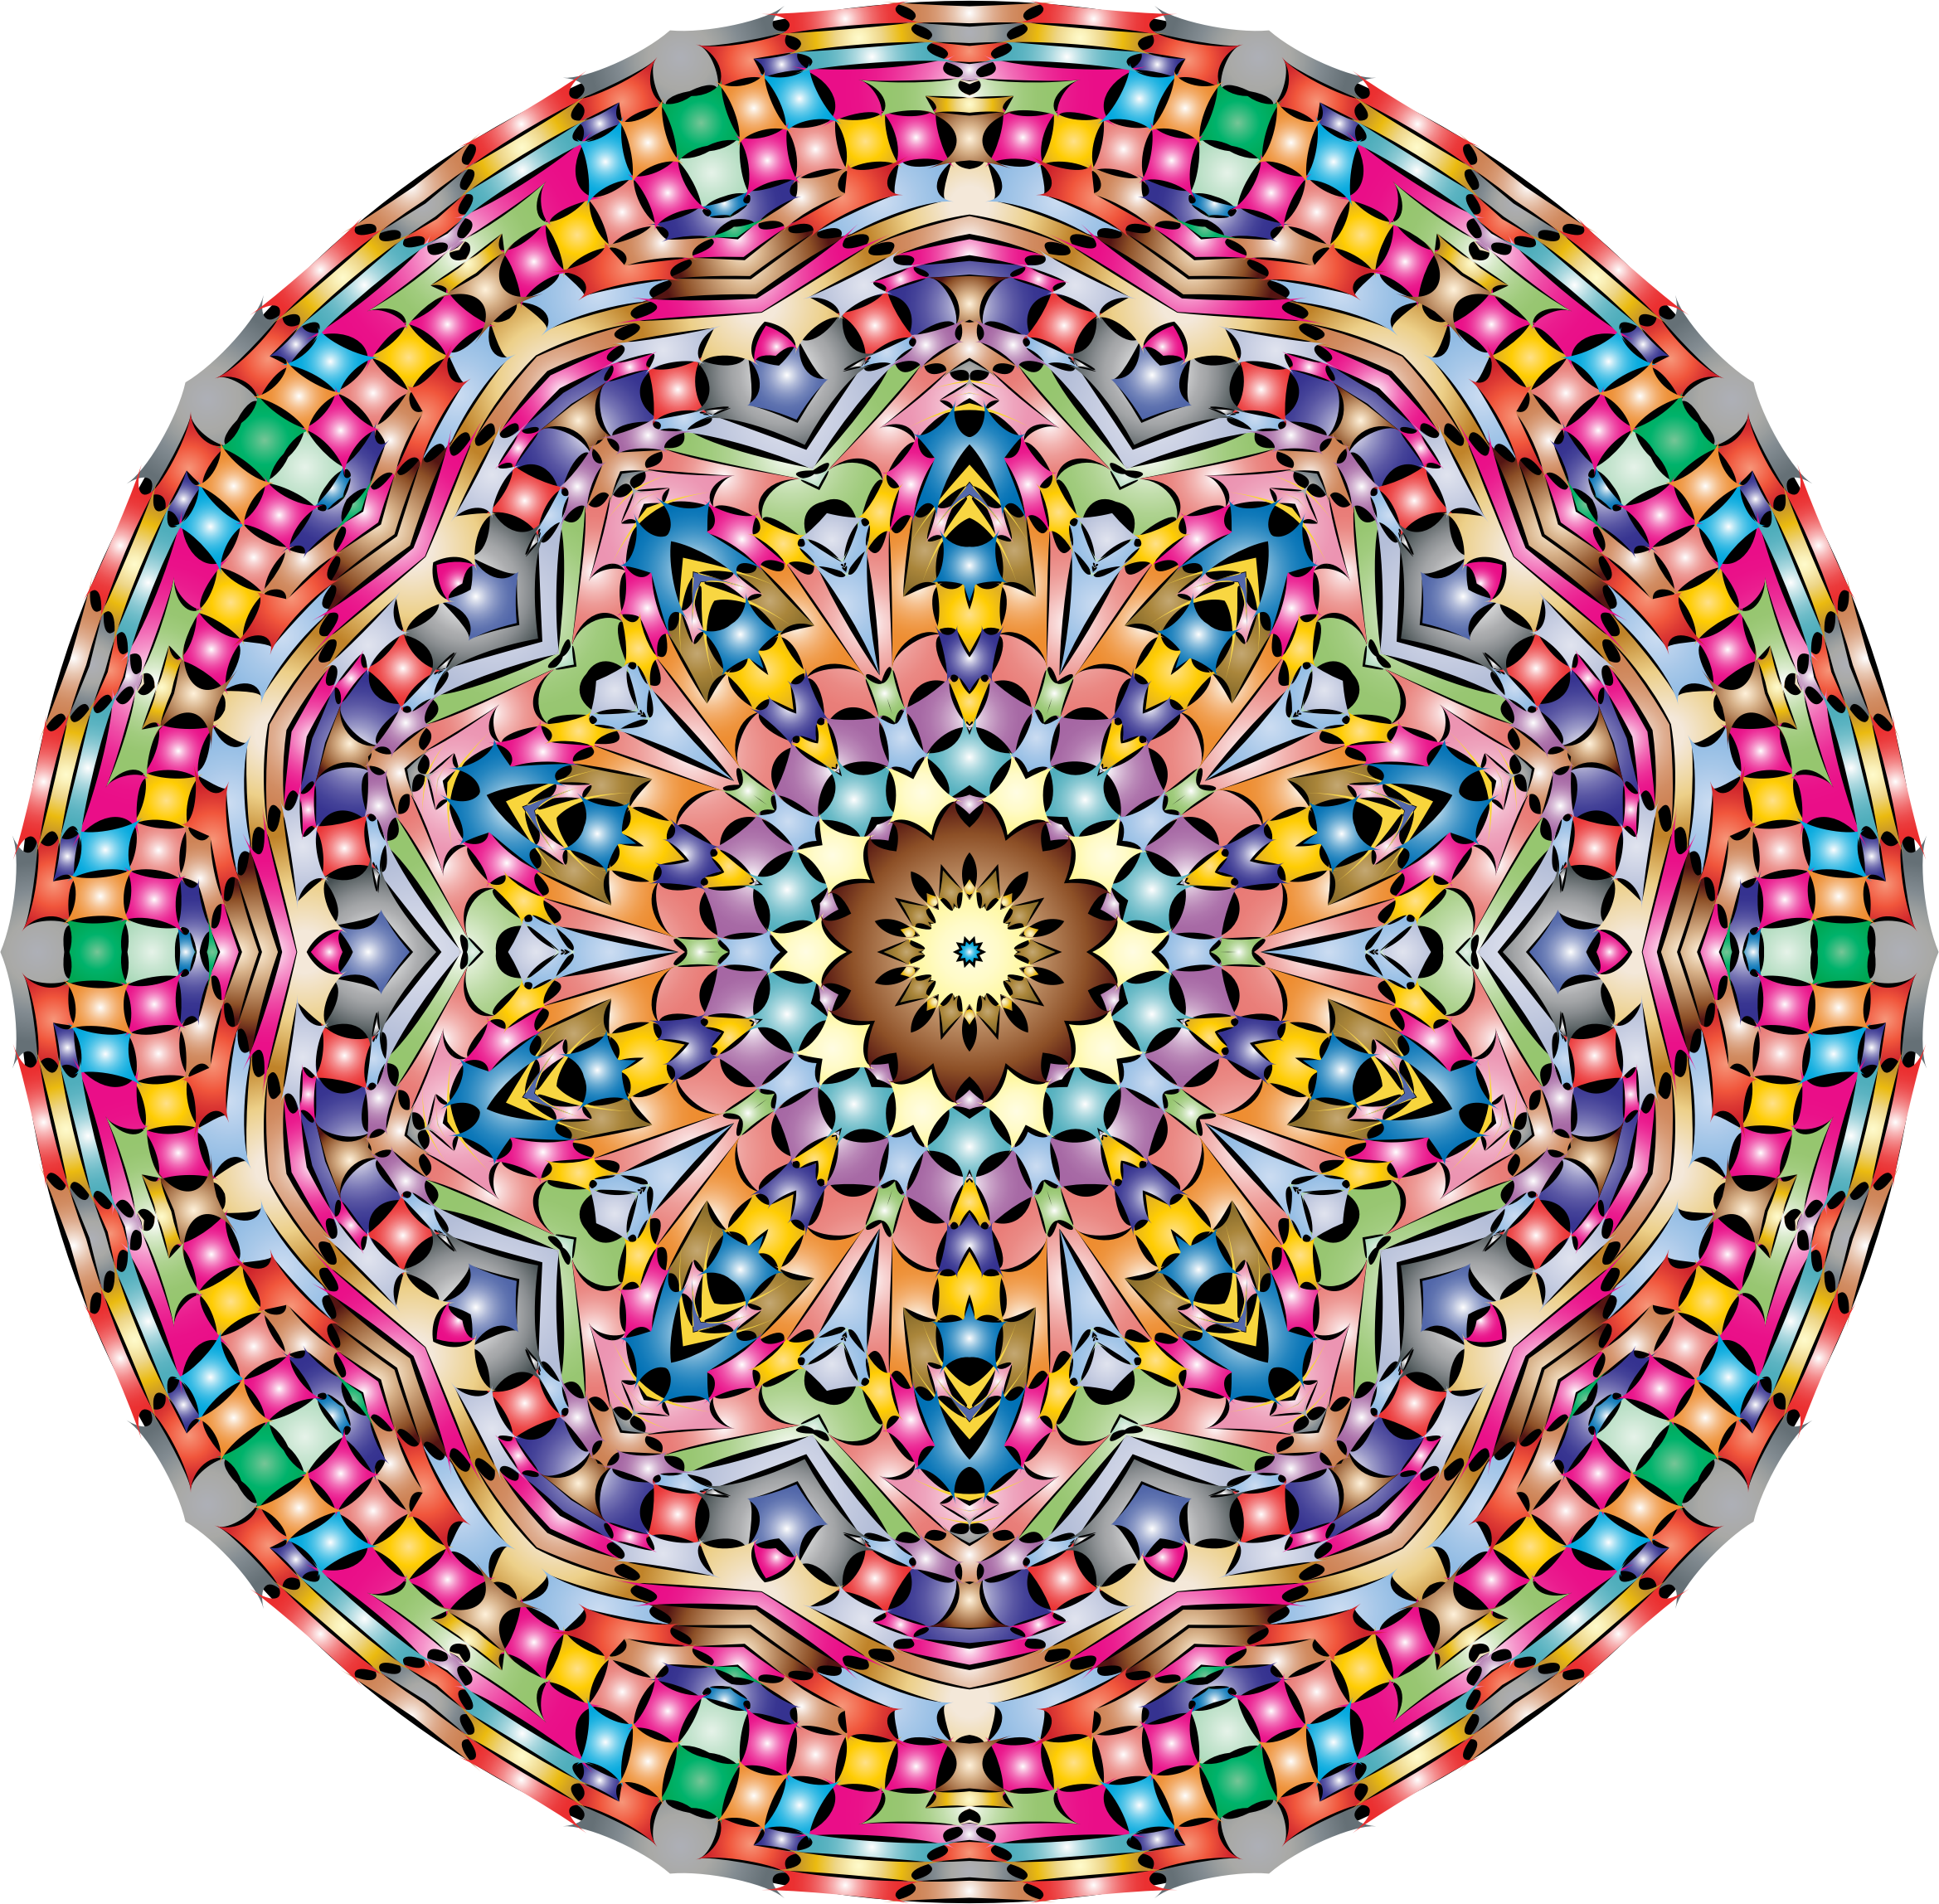 Kaleidoscopic Mandala 5 by GDJ